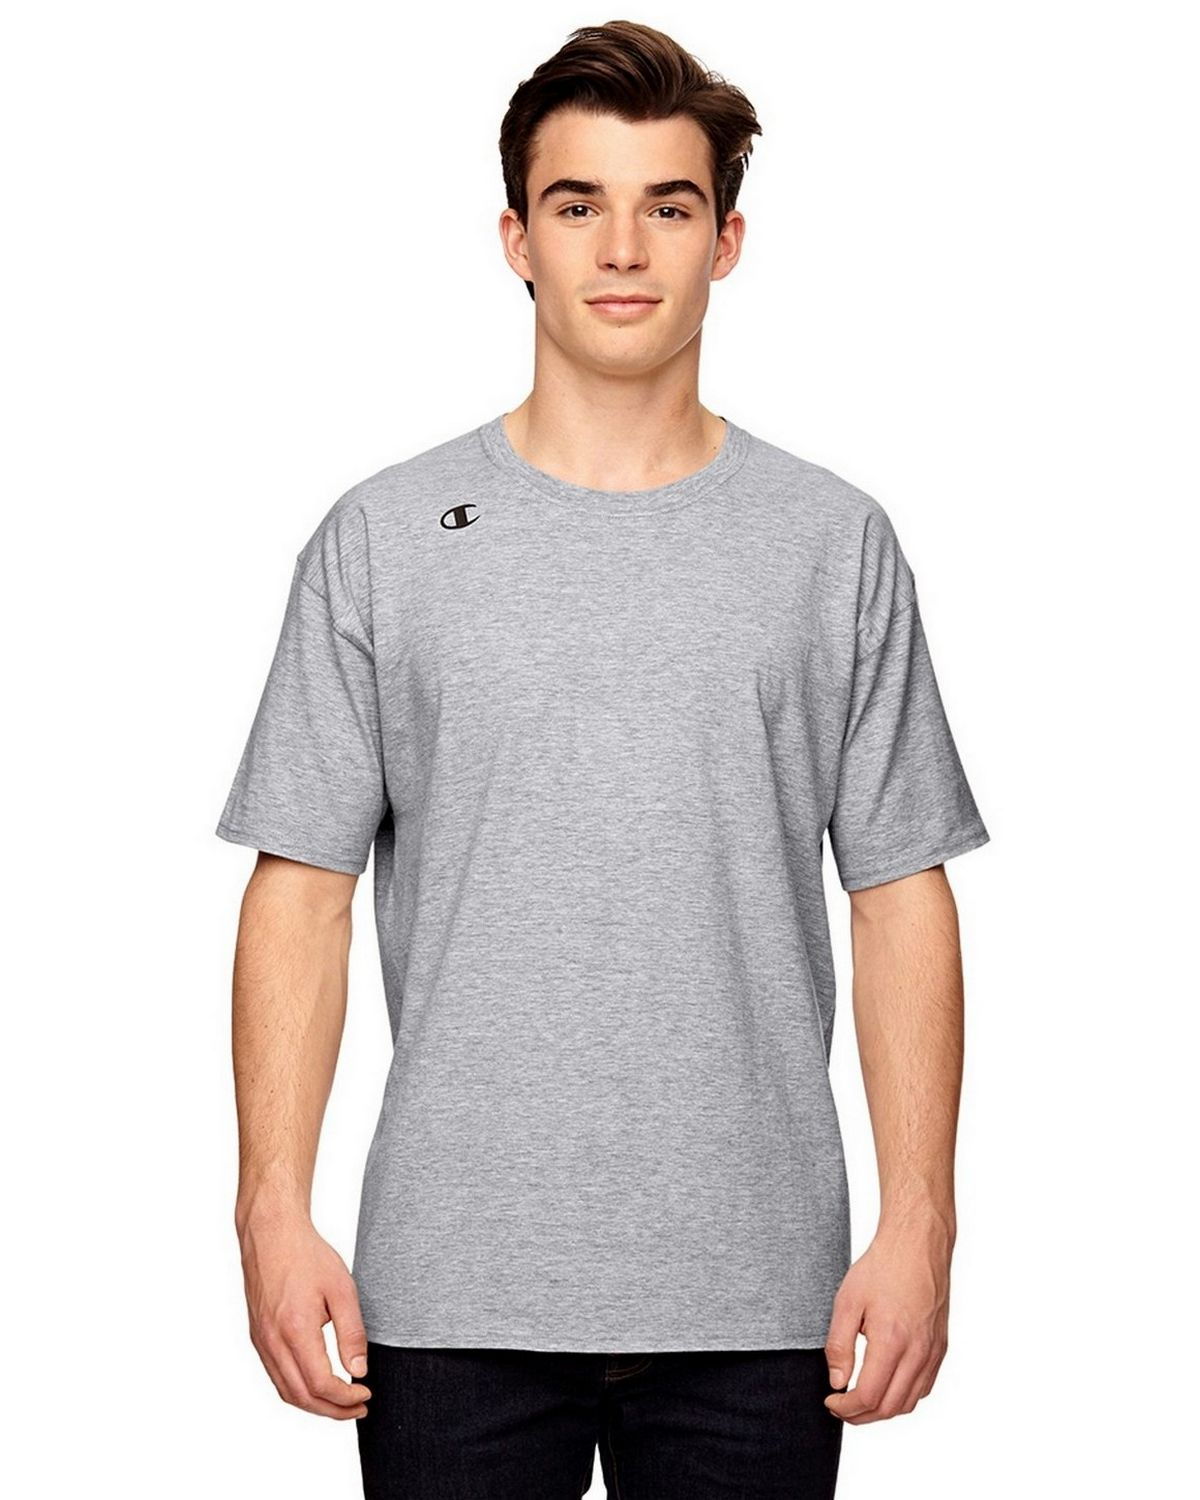 Champion T380 Vapor Cotton T-Shirt - White Heather - XS T380